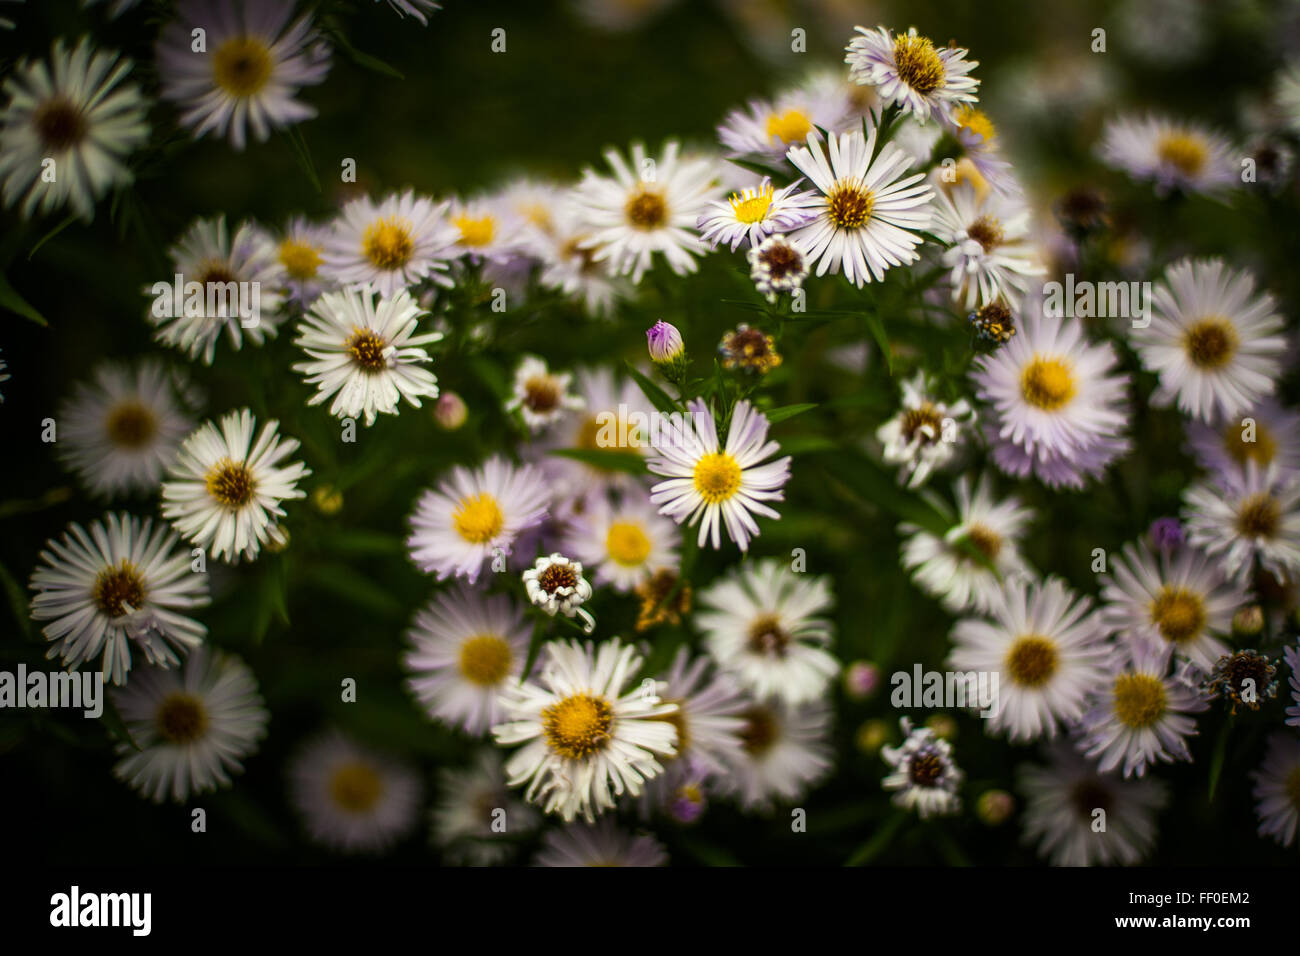 Dainty white flowers in a London park, England - Stock Image